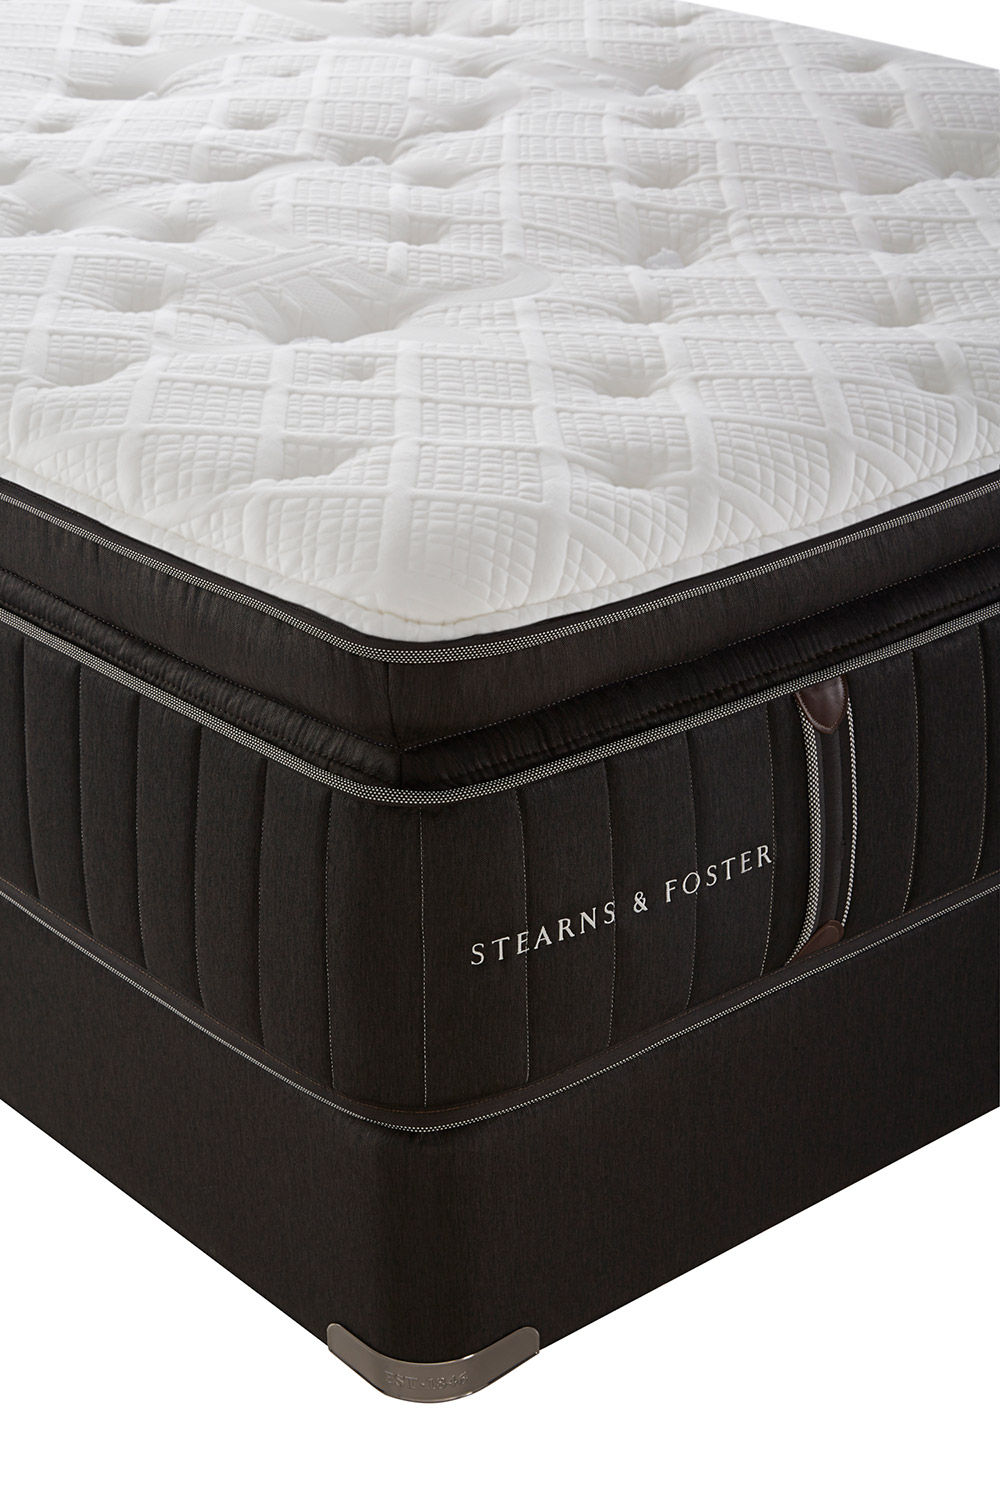 Picture of Stearns & Foster Bayfield Cushion Firm Pillowtop Queen Mattress Only